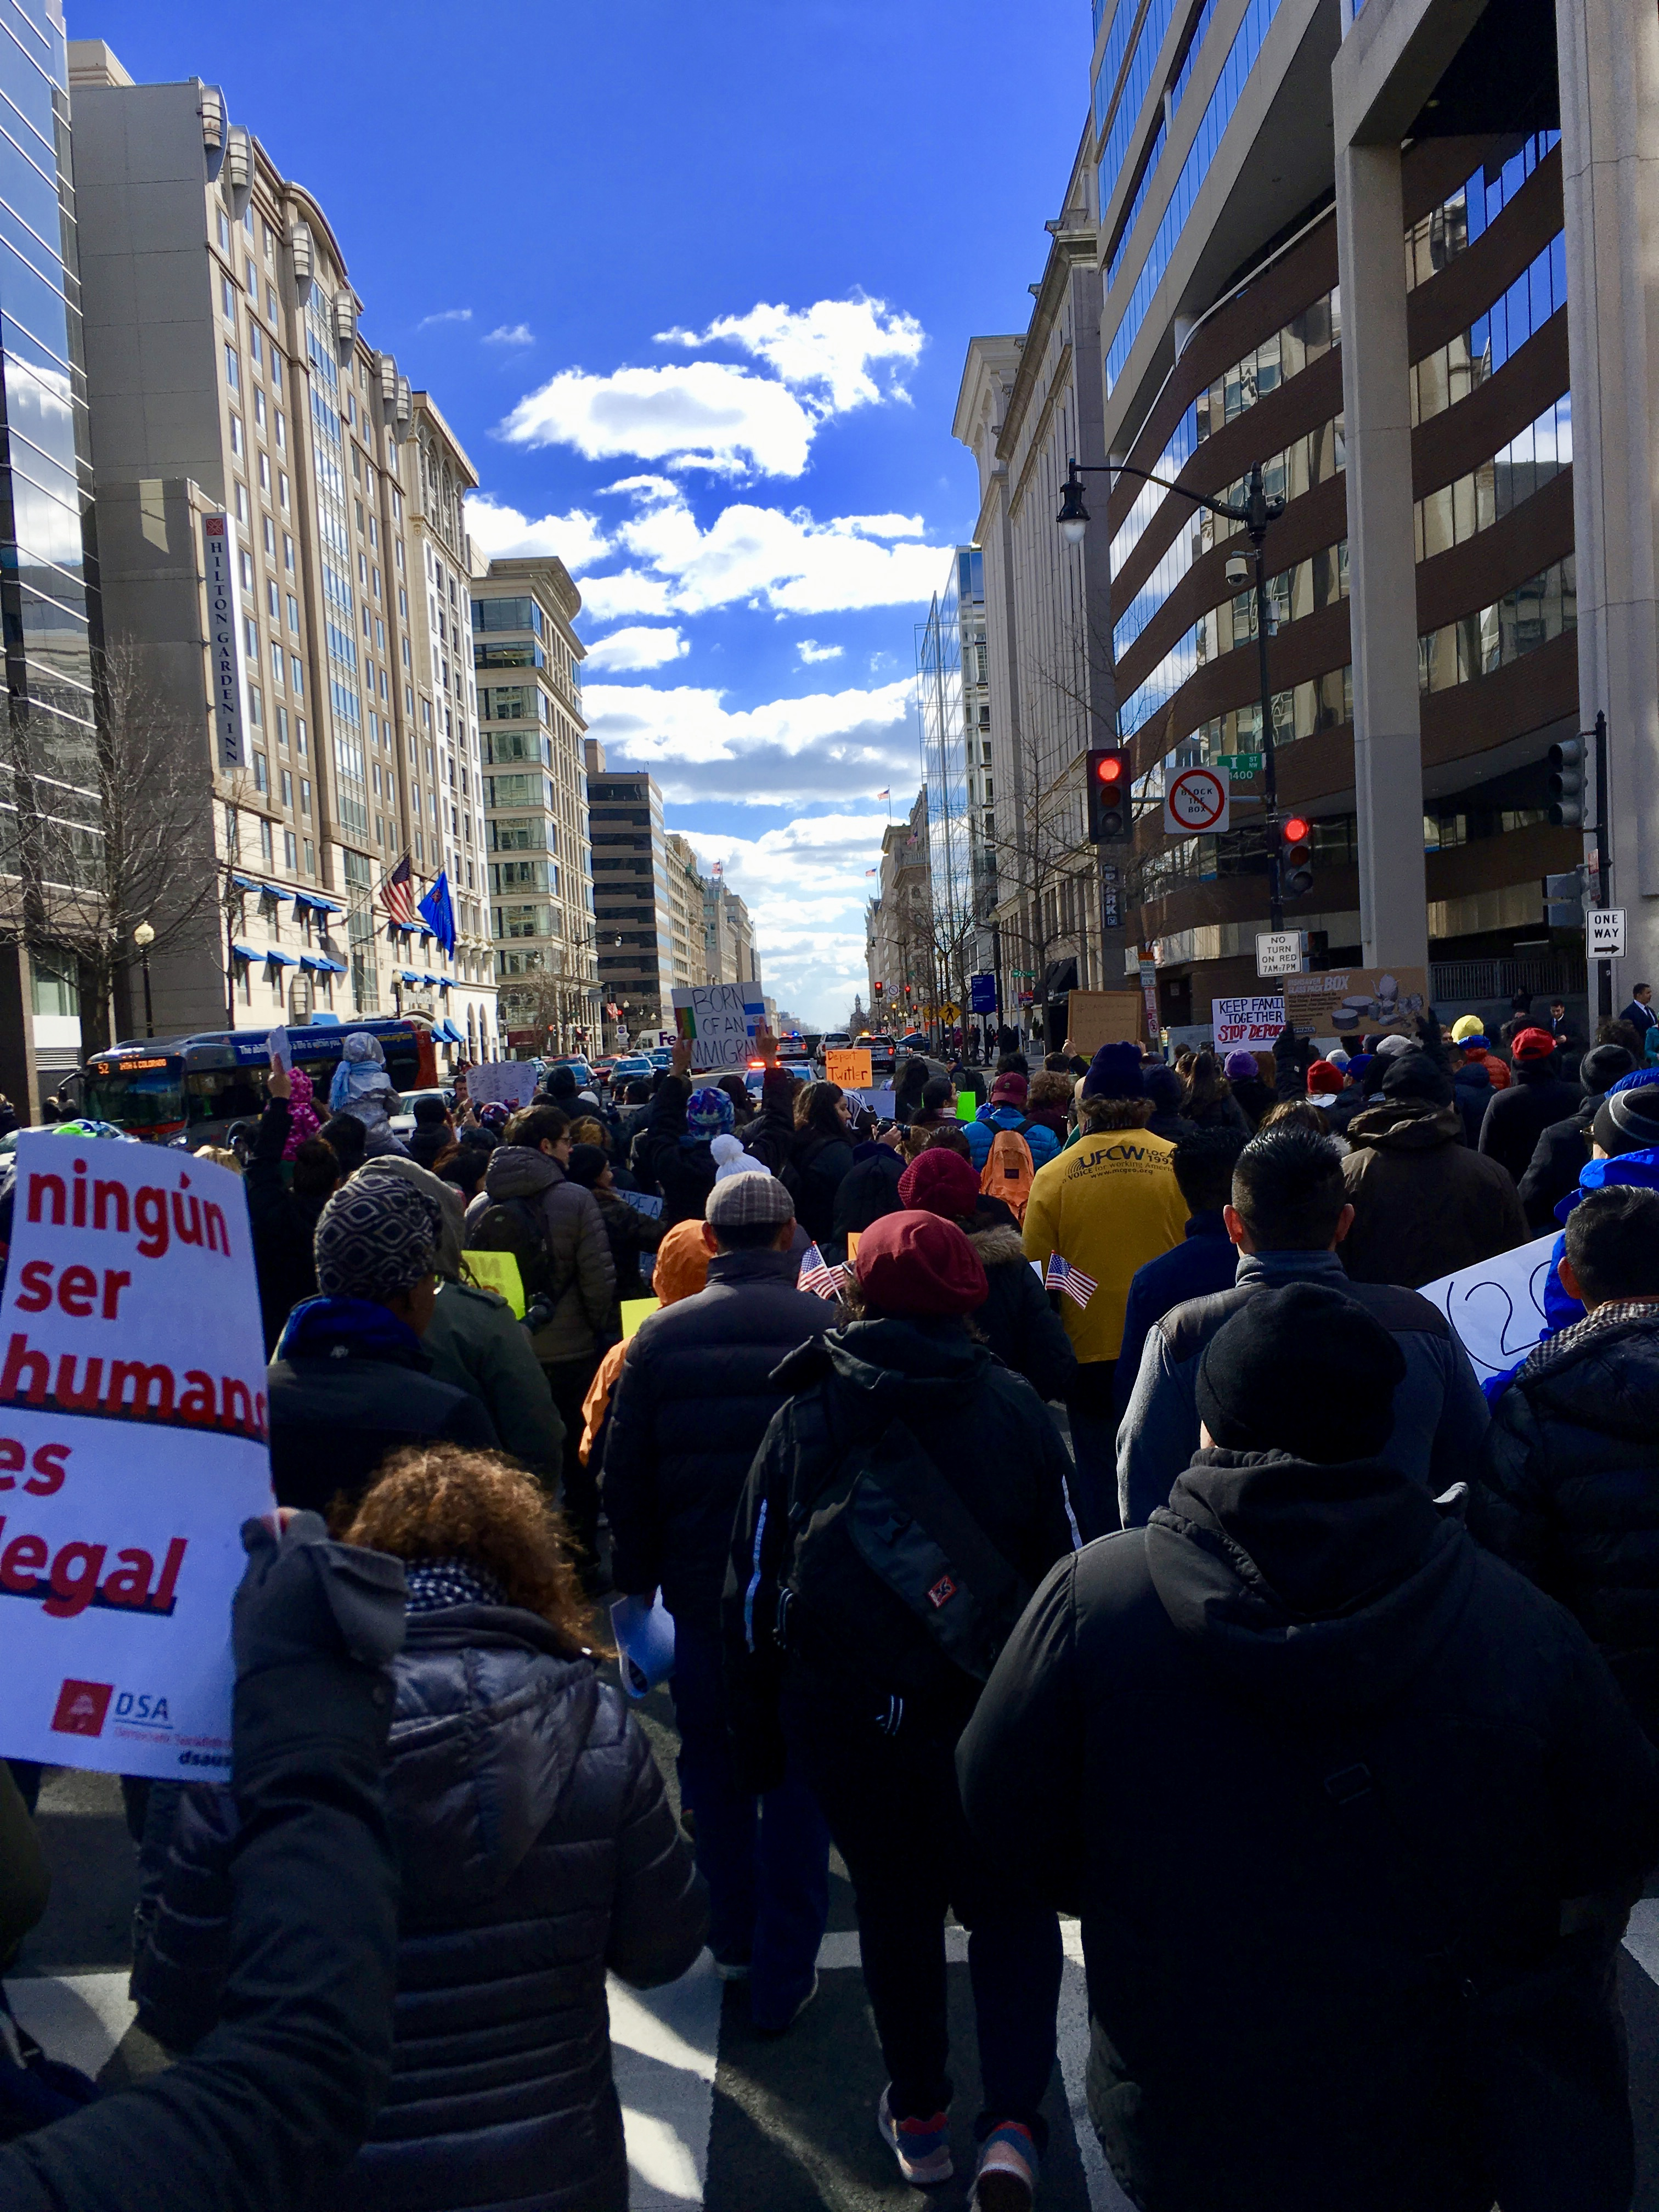 A Day Without Immigrants tells me what democracy looks like